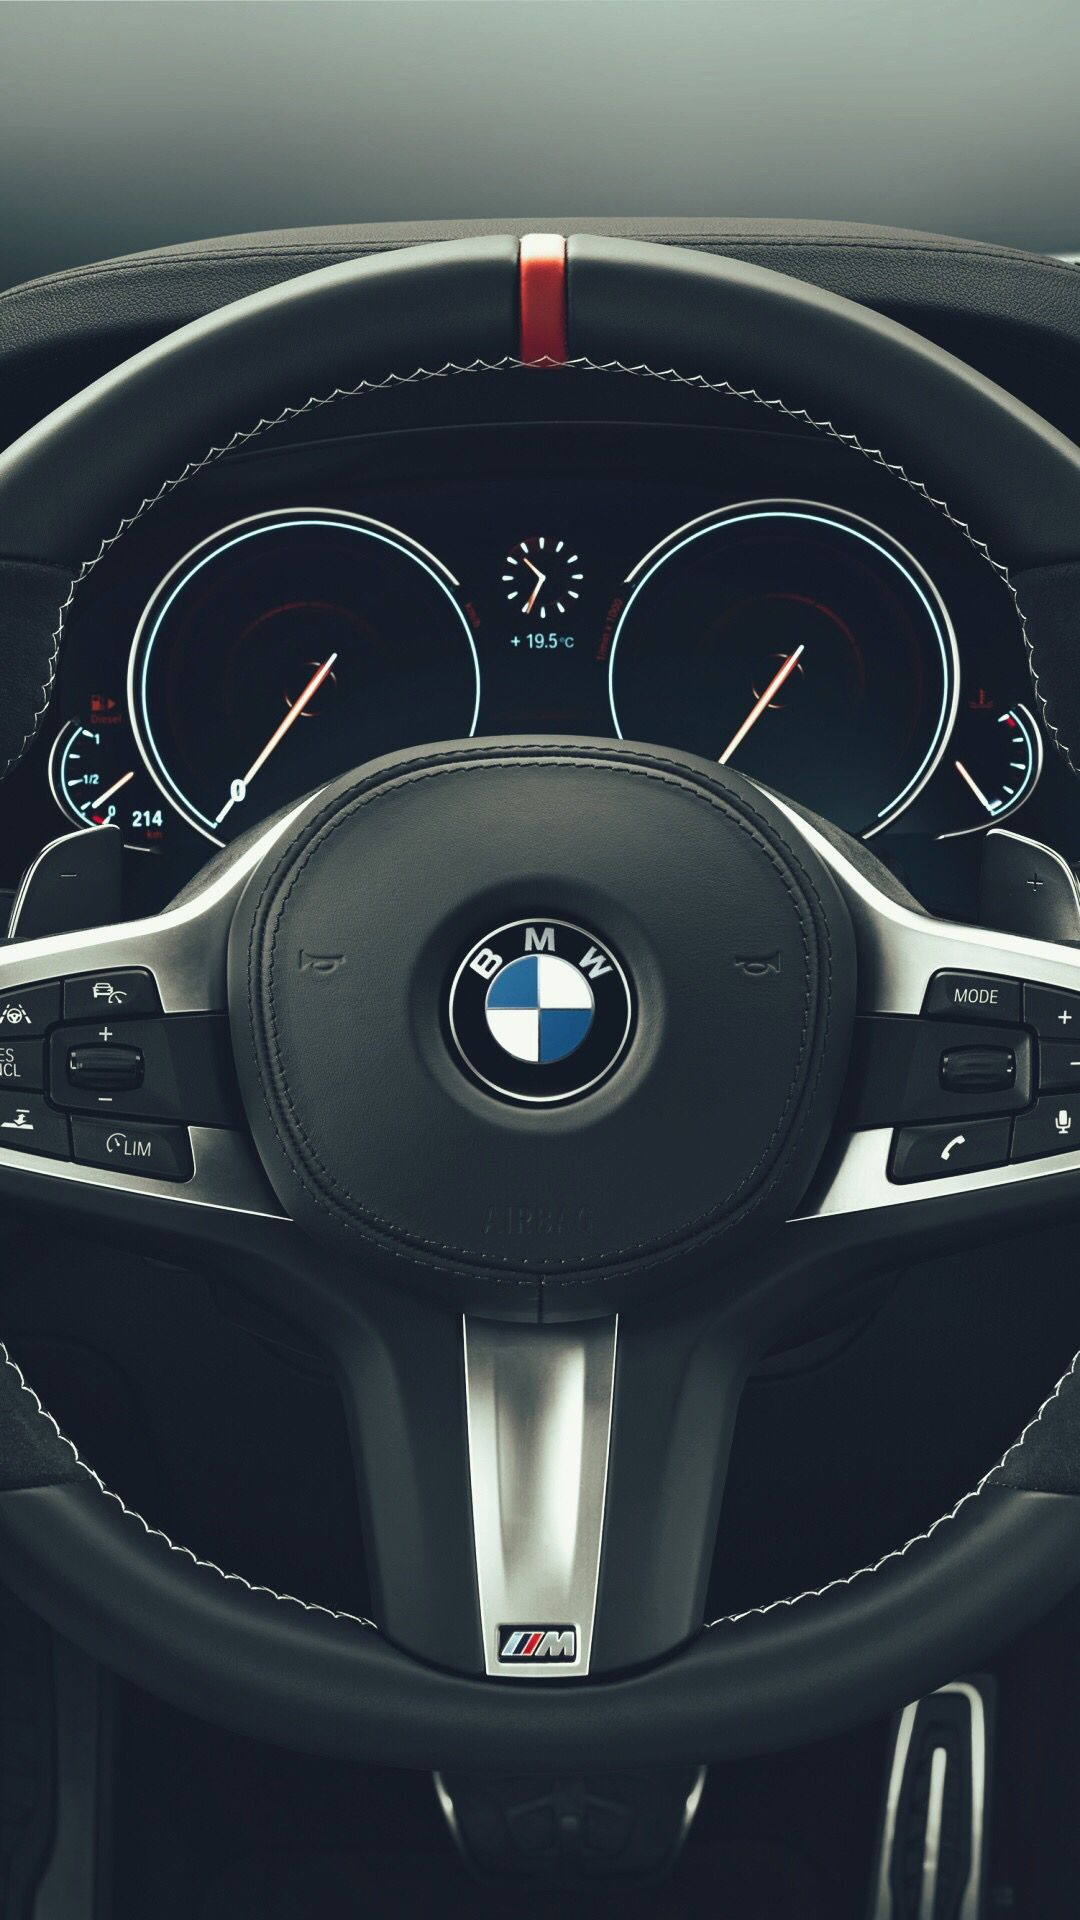 Pin By Arley On Motors Bmw Wallpapers Luxury Cars Bmw Bmw Cars